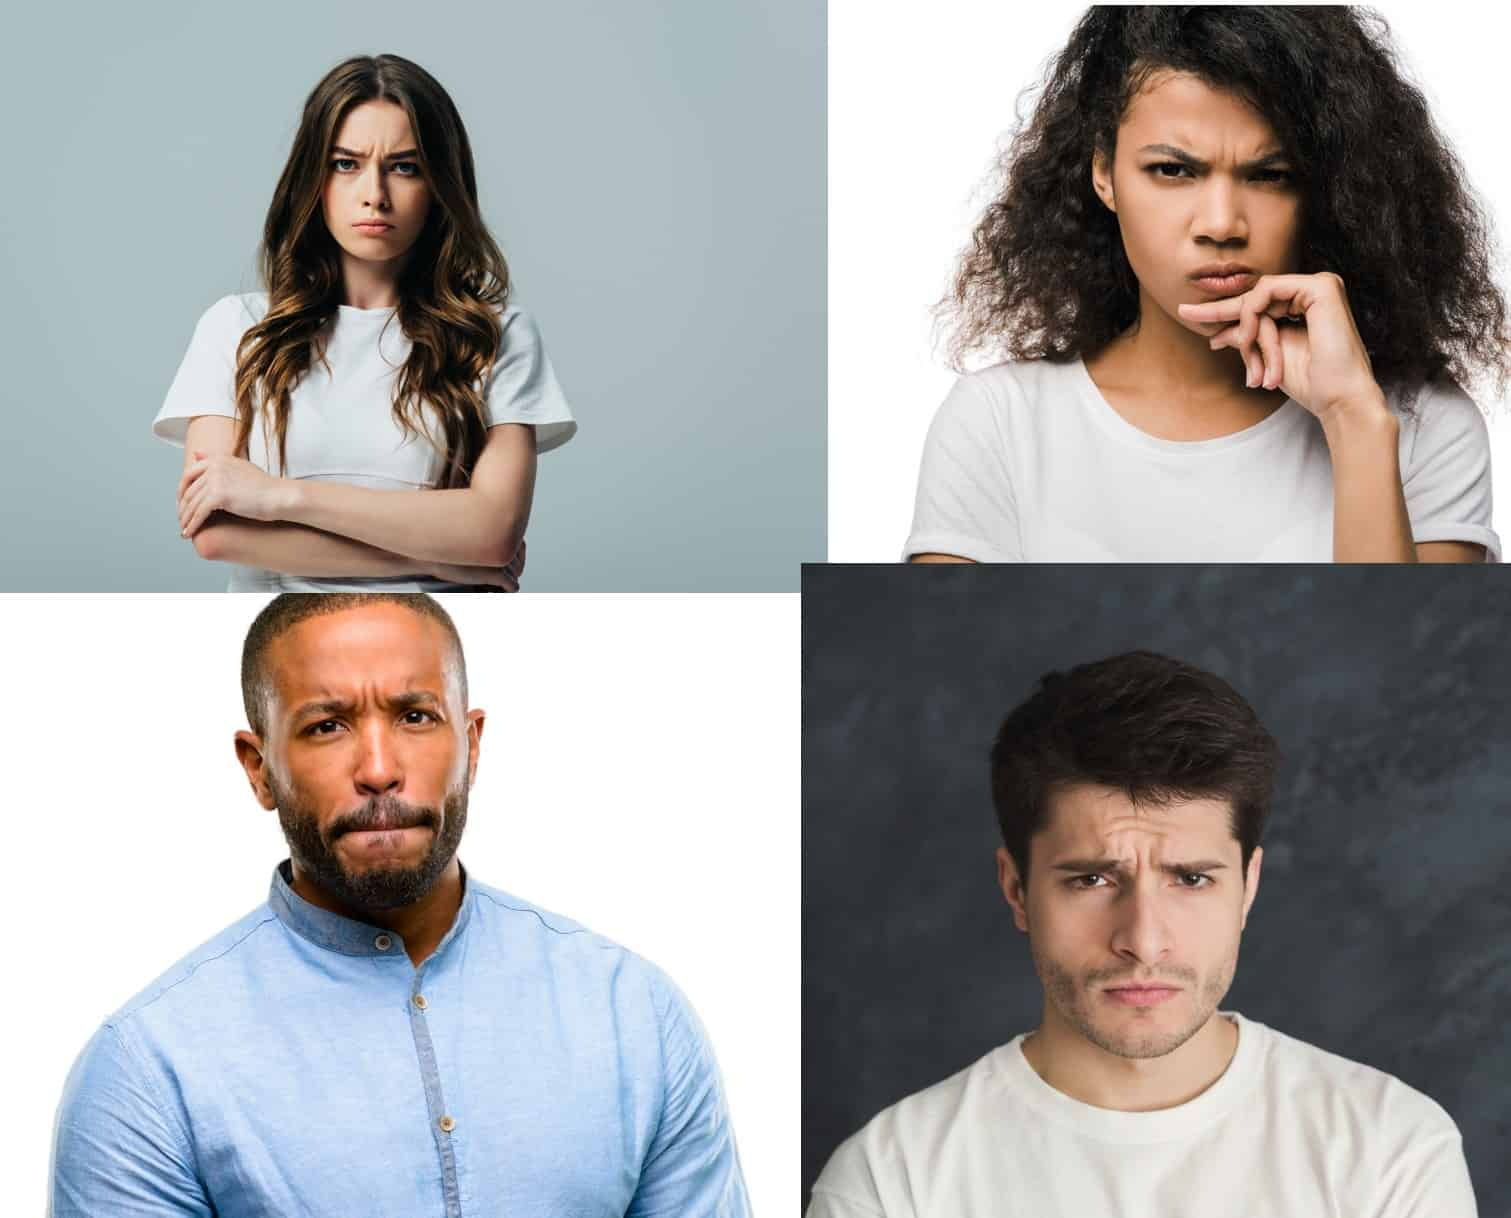 four pictures of individuals expressing anger